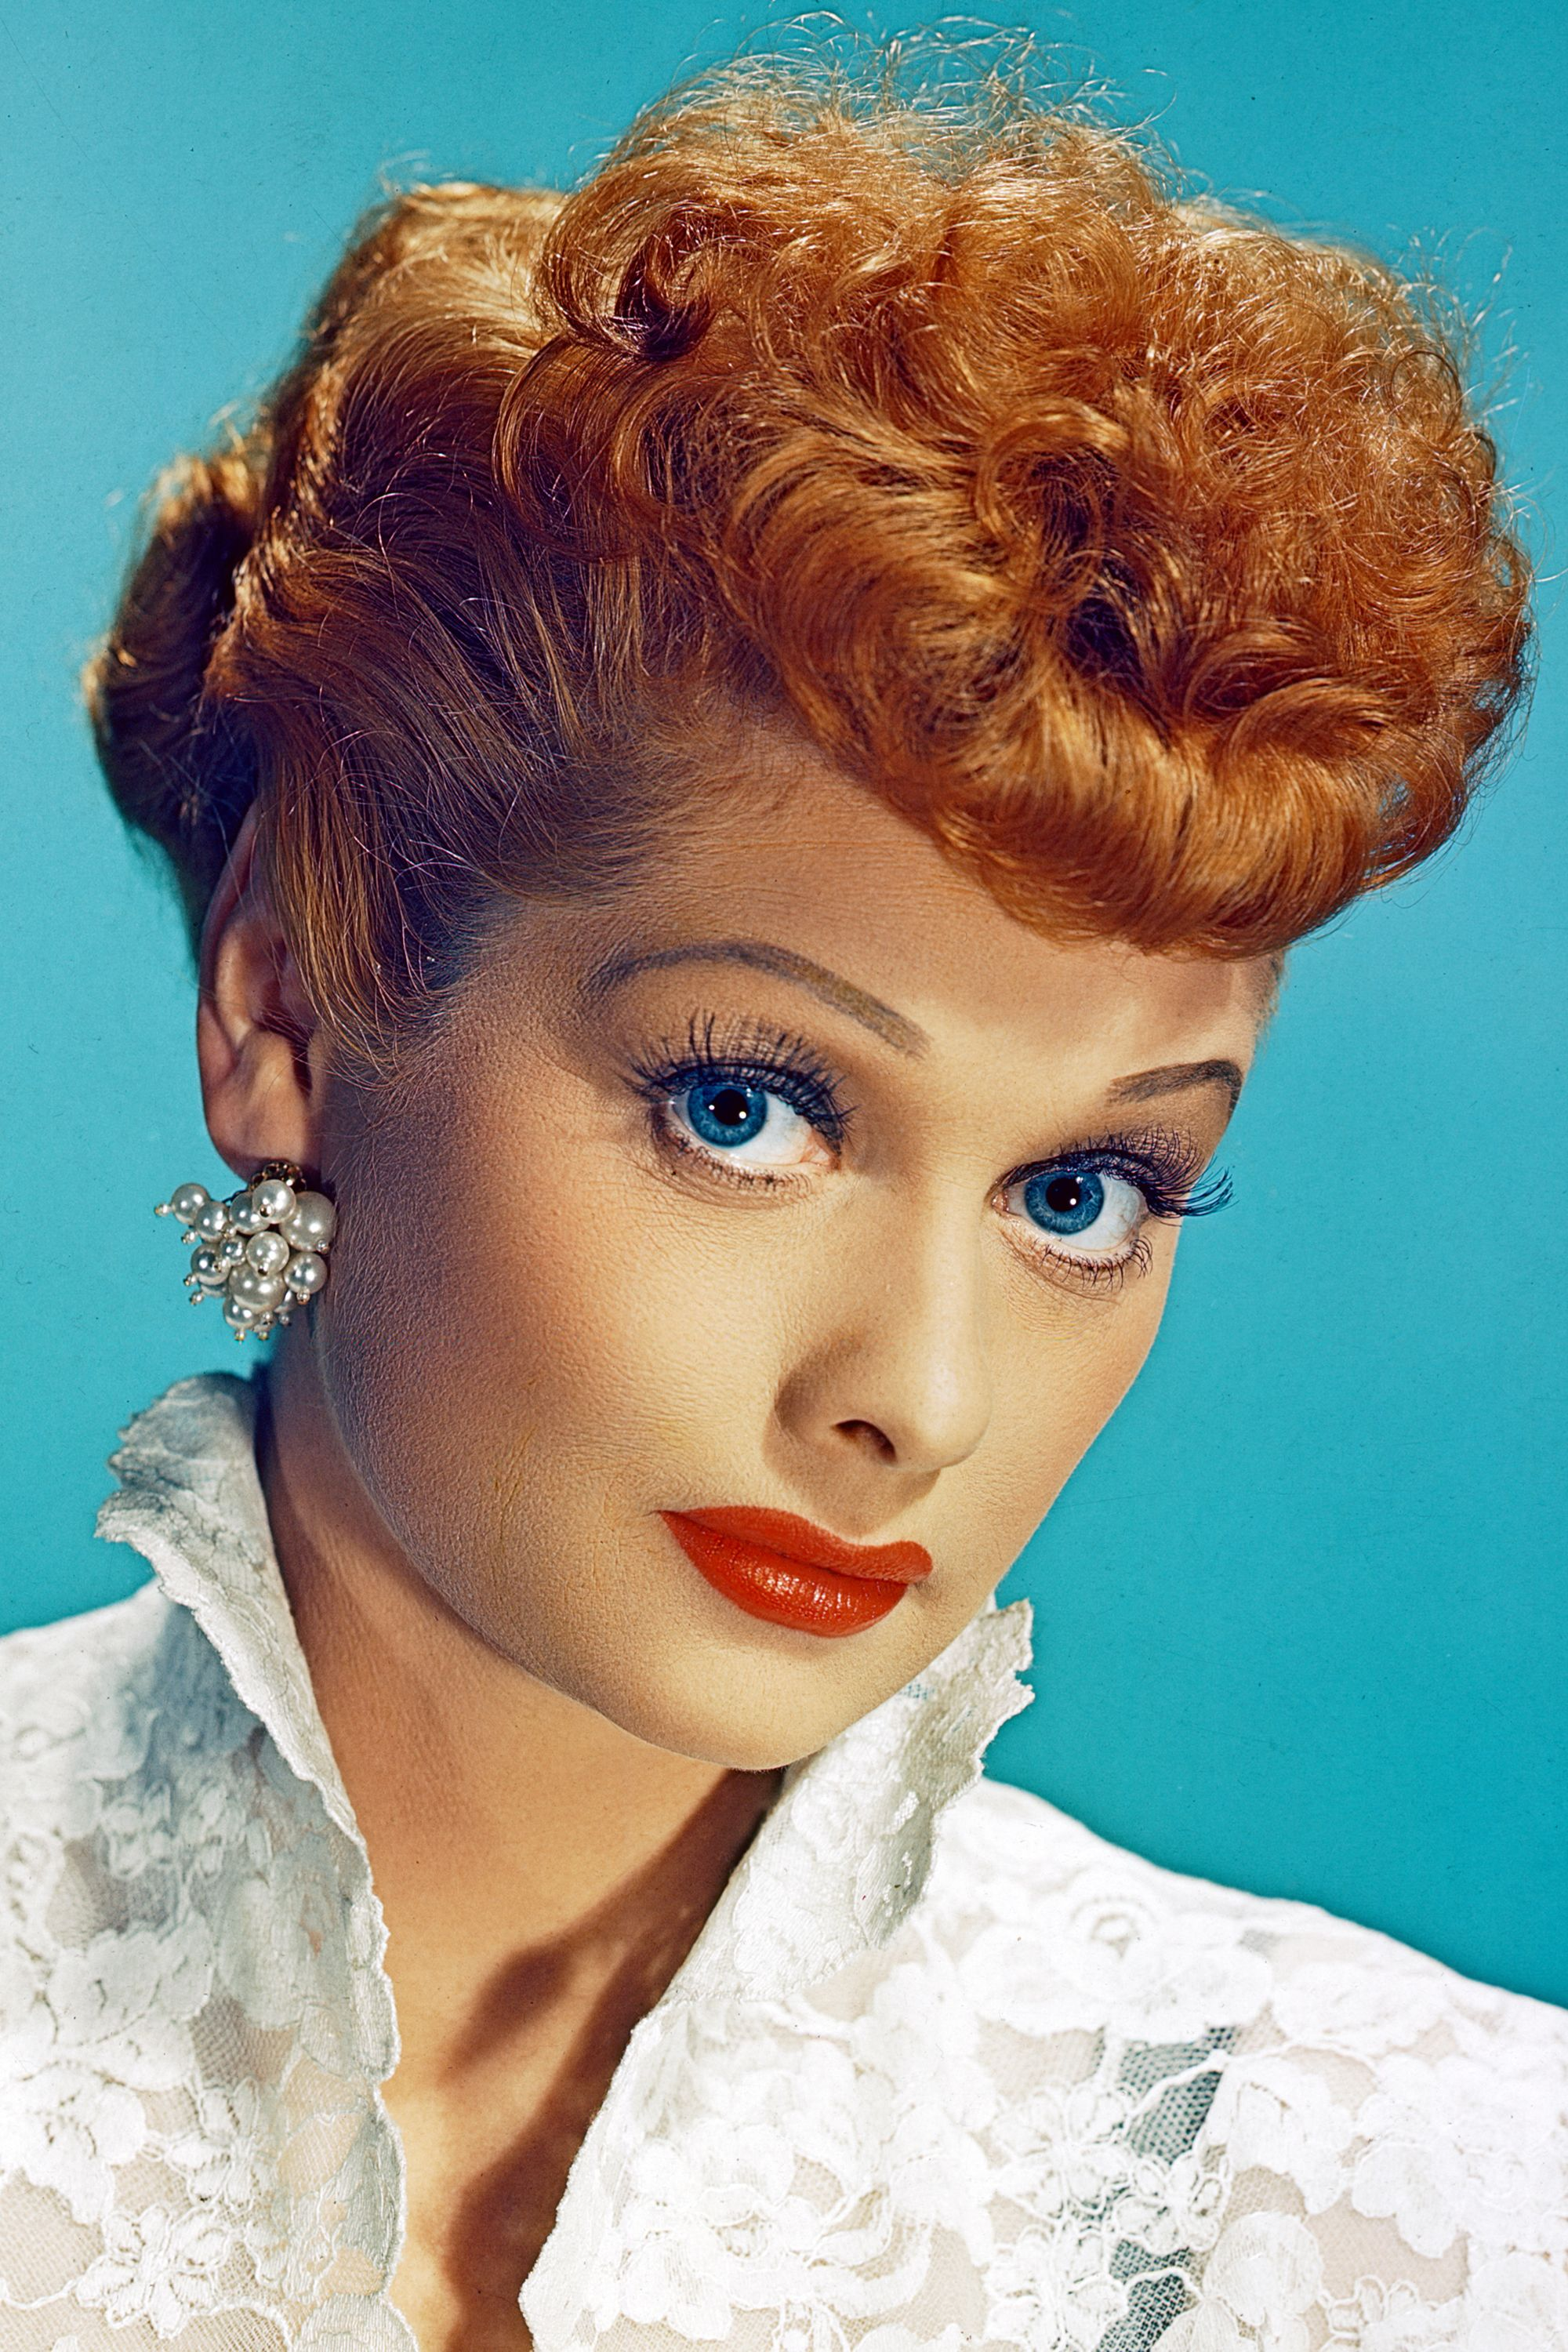 <p>Lucille Ball's fiery red curls were as big of a hit as her over-the-top personality on <em>I Love Lucy</em>.</p>